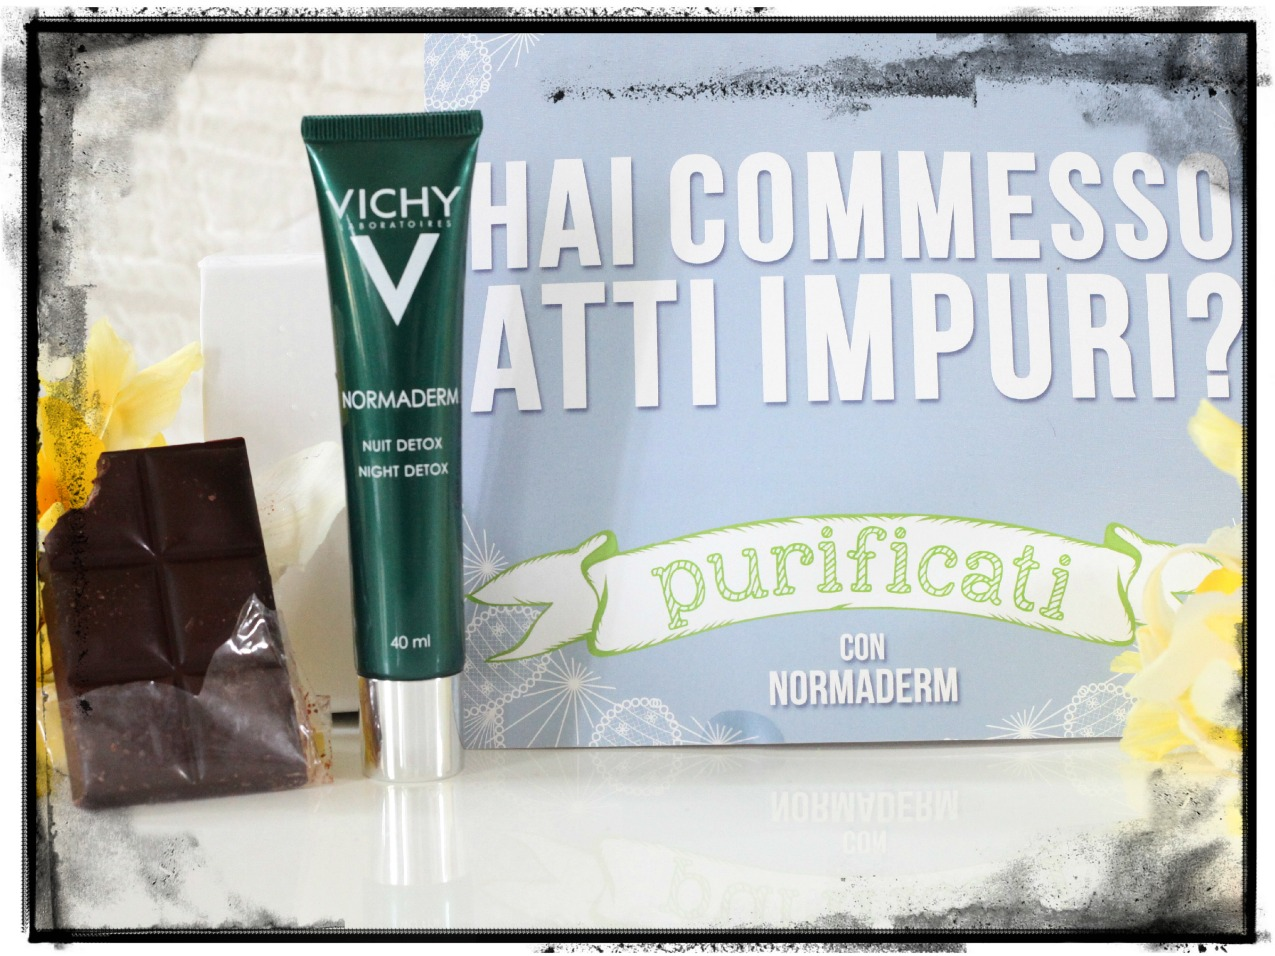 http://www.vichy.it/anti-imperfezioni/nuit-detox-normaderm/p10817.aspx